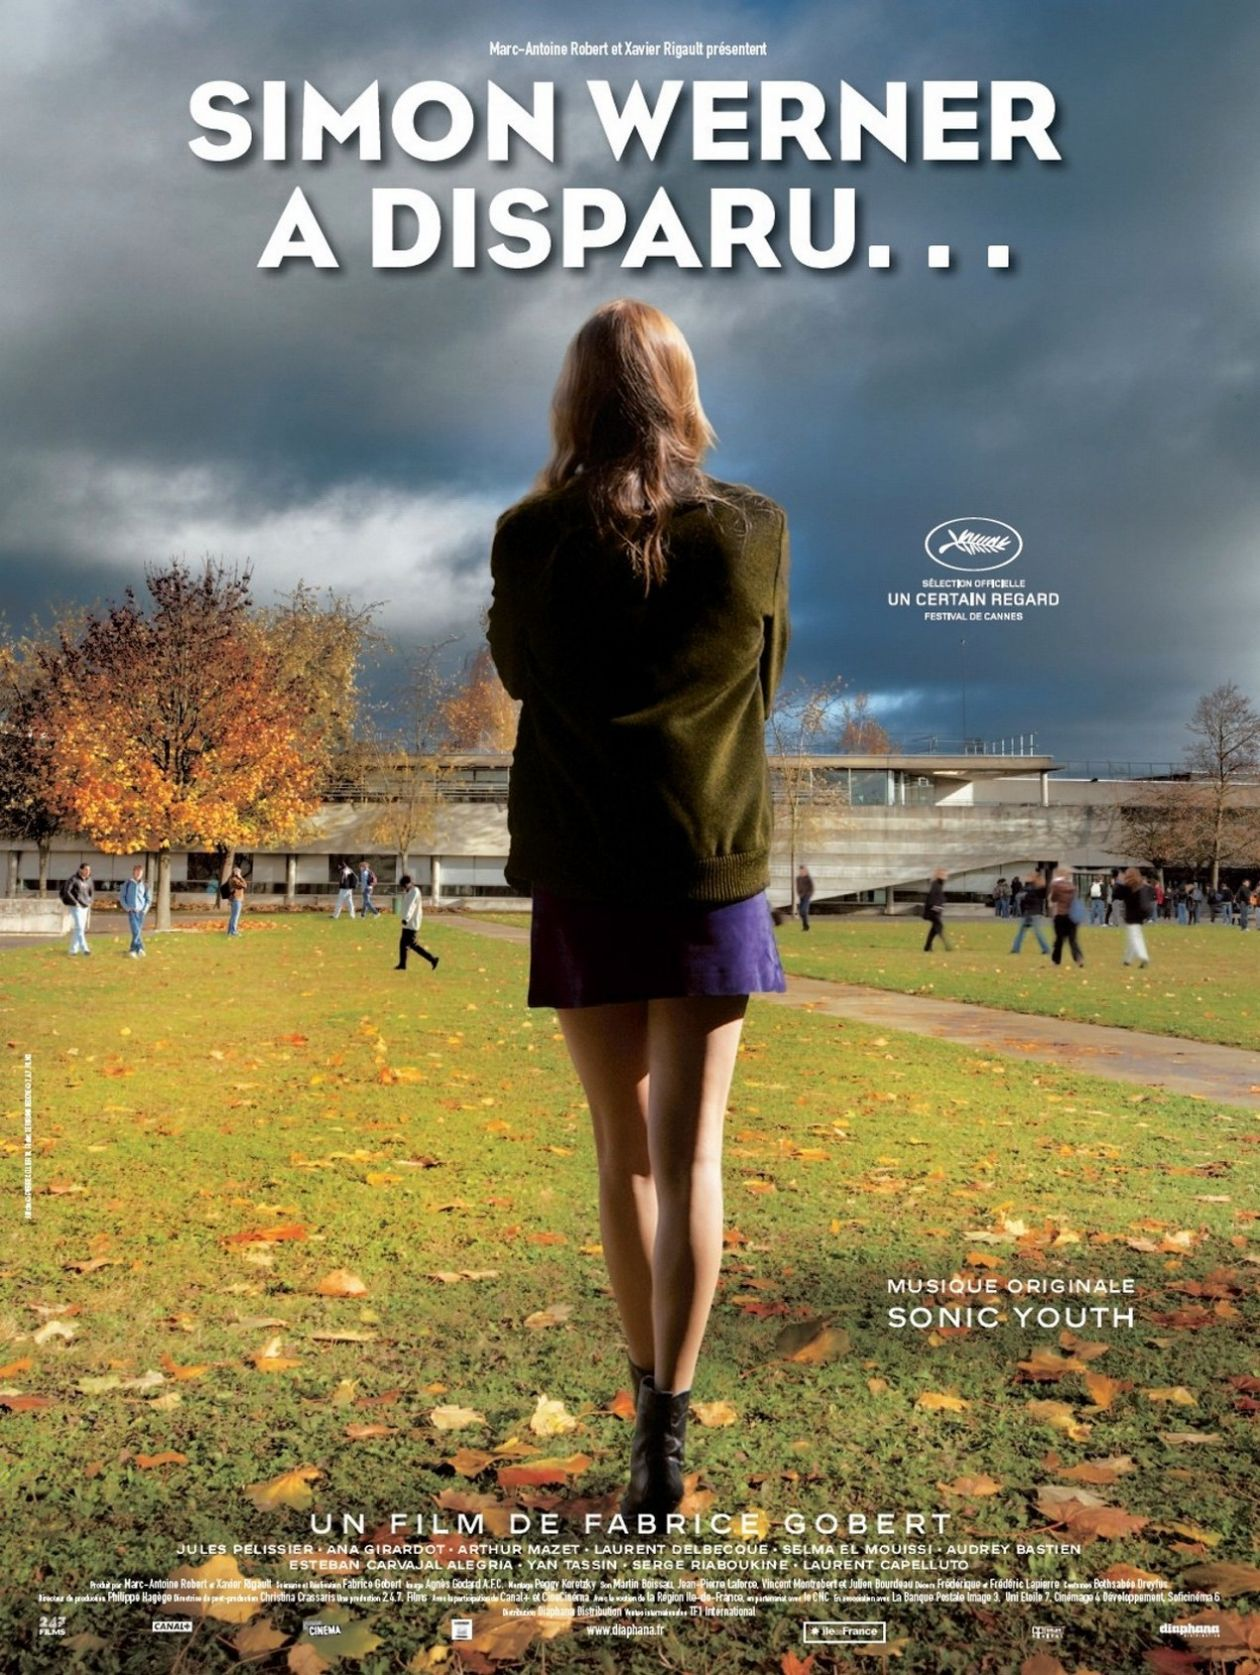 Ana Girardot : Simon Werner a disparu... | Fabrice Gobert / Affiche du film / Movie Poster